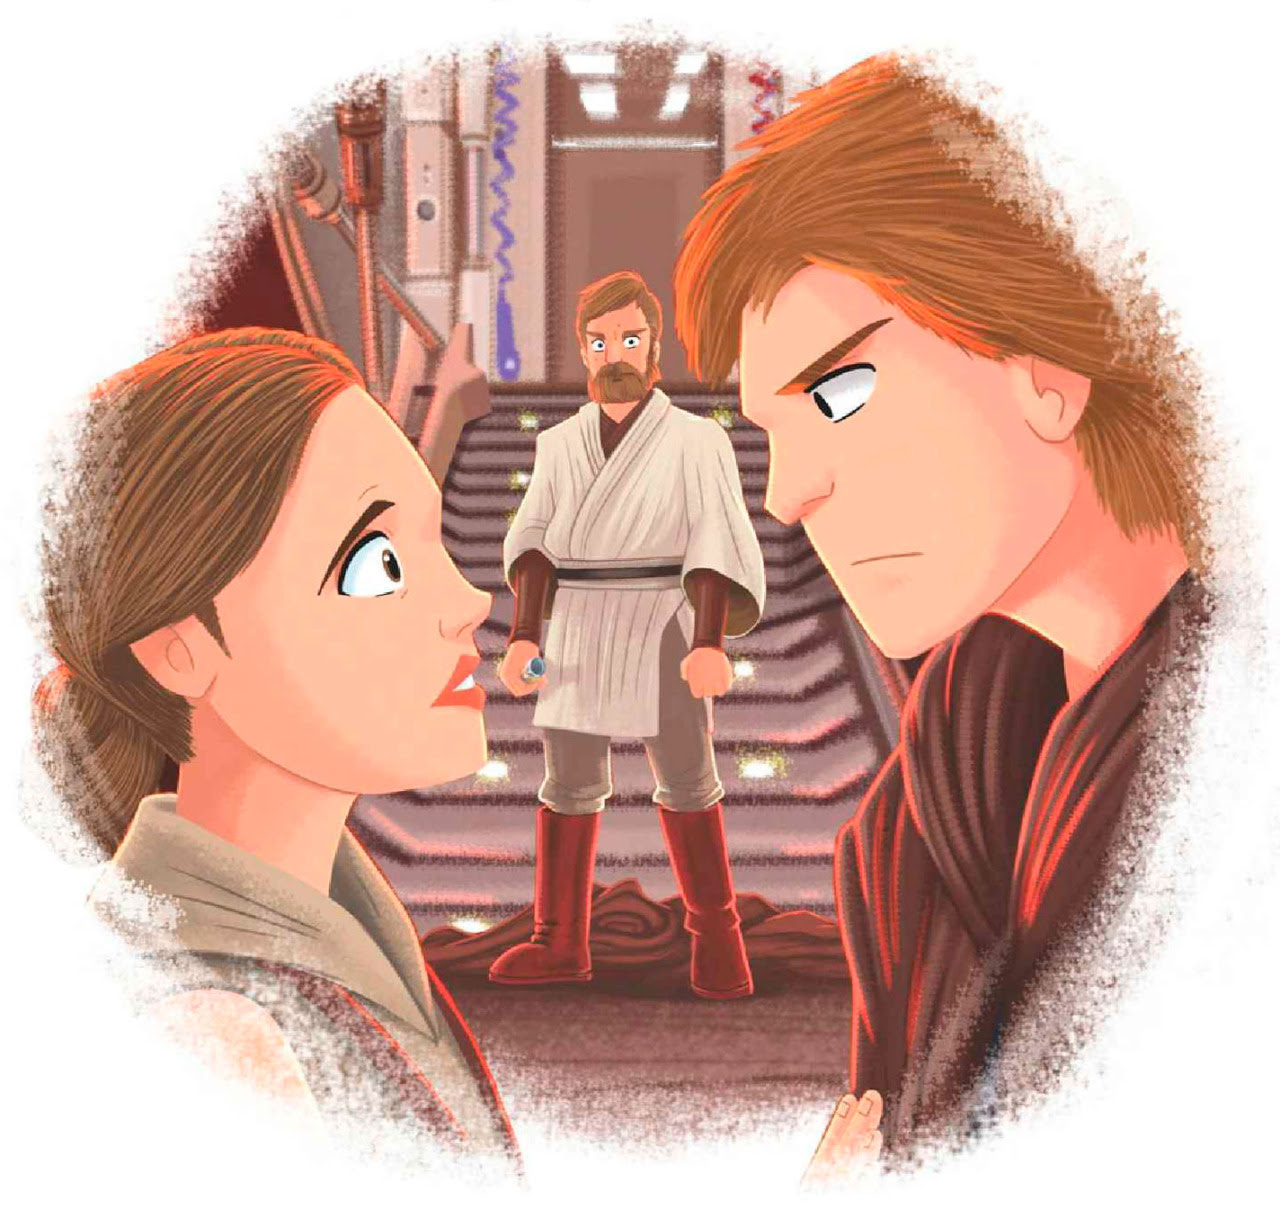 Star Wars Little Golden Books Anakin & Padme AOTC Scans | Anakin And His Angel